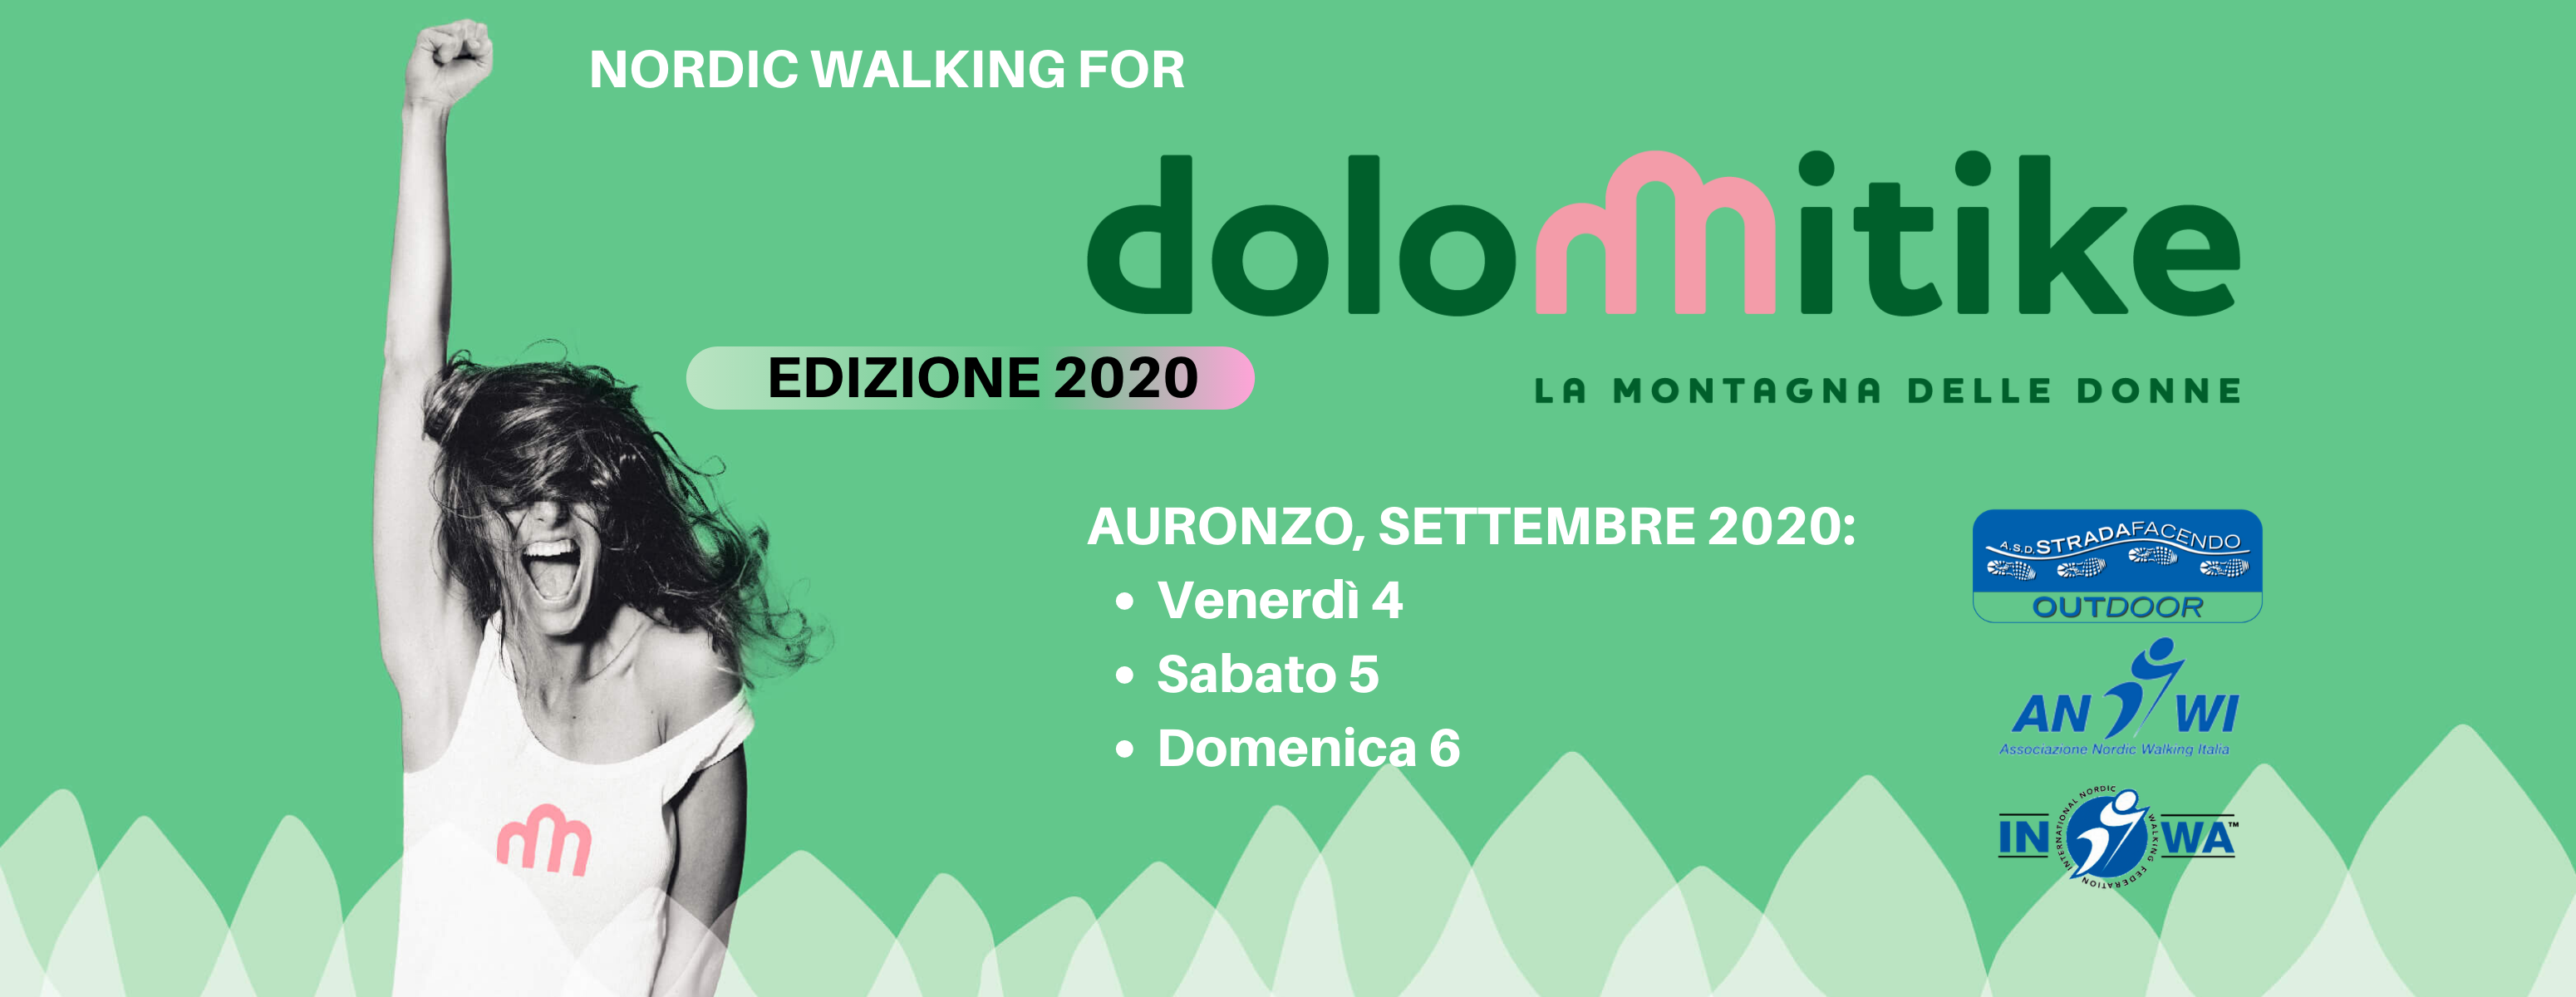 Nordic Walking for Dolomitike 2020